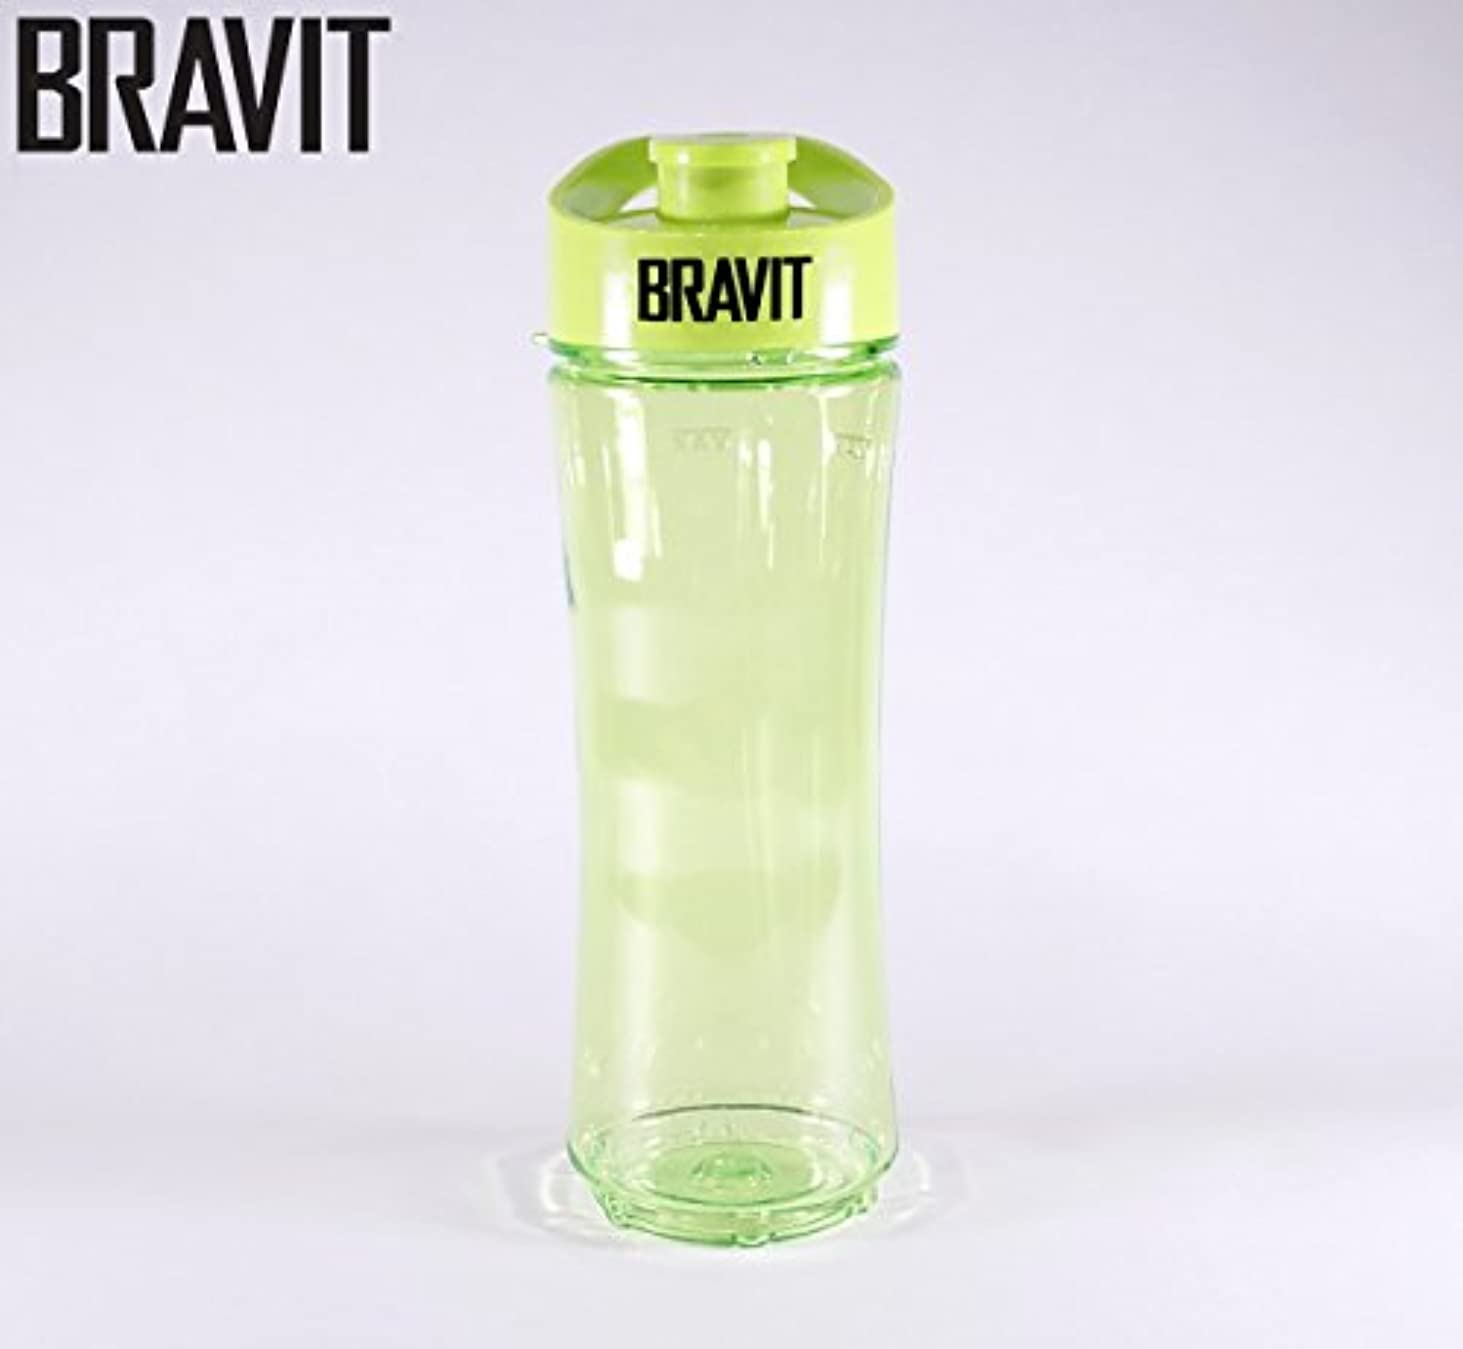 造船鉄連結するBRAVIT Personal Sports Bottle, Smoothie, Shake Maker with Travel Lead for BRAVIT Personal Sports Blender by BRAVIT